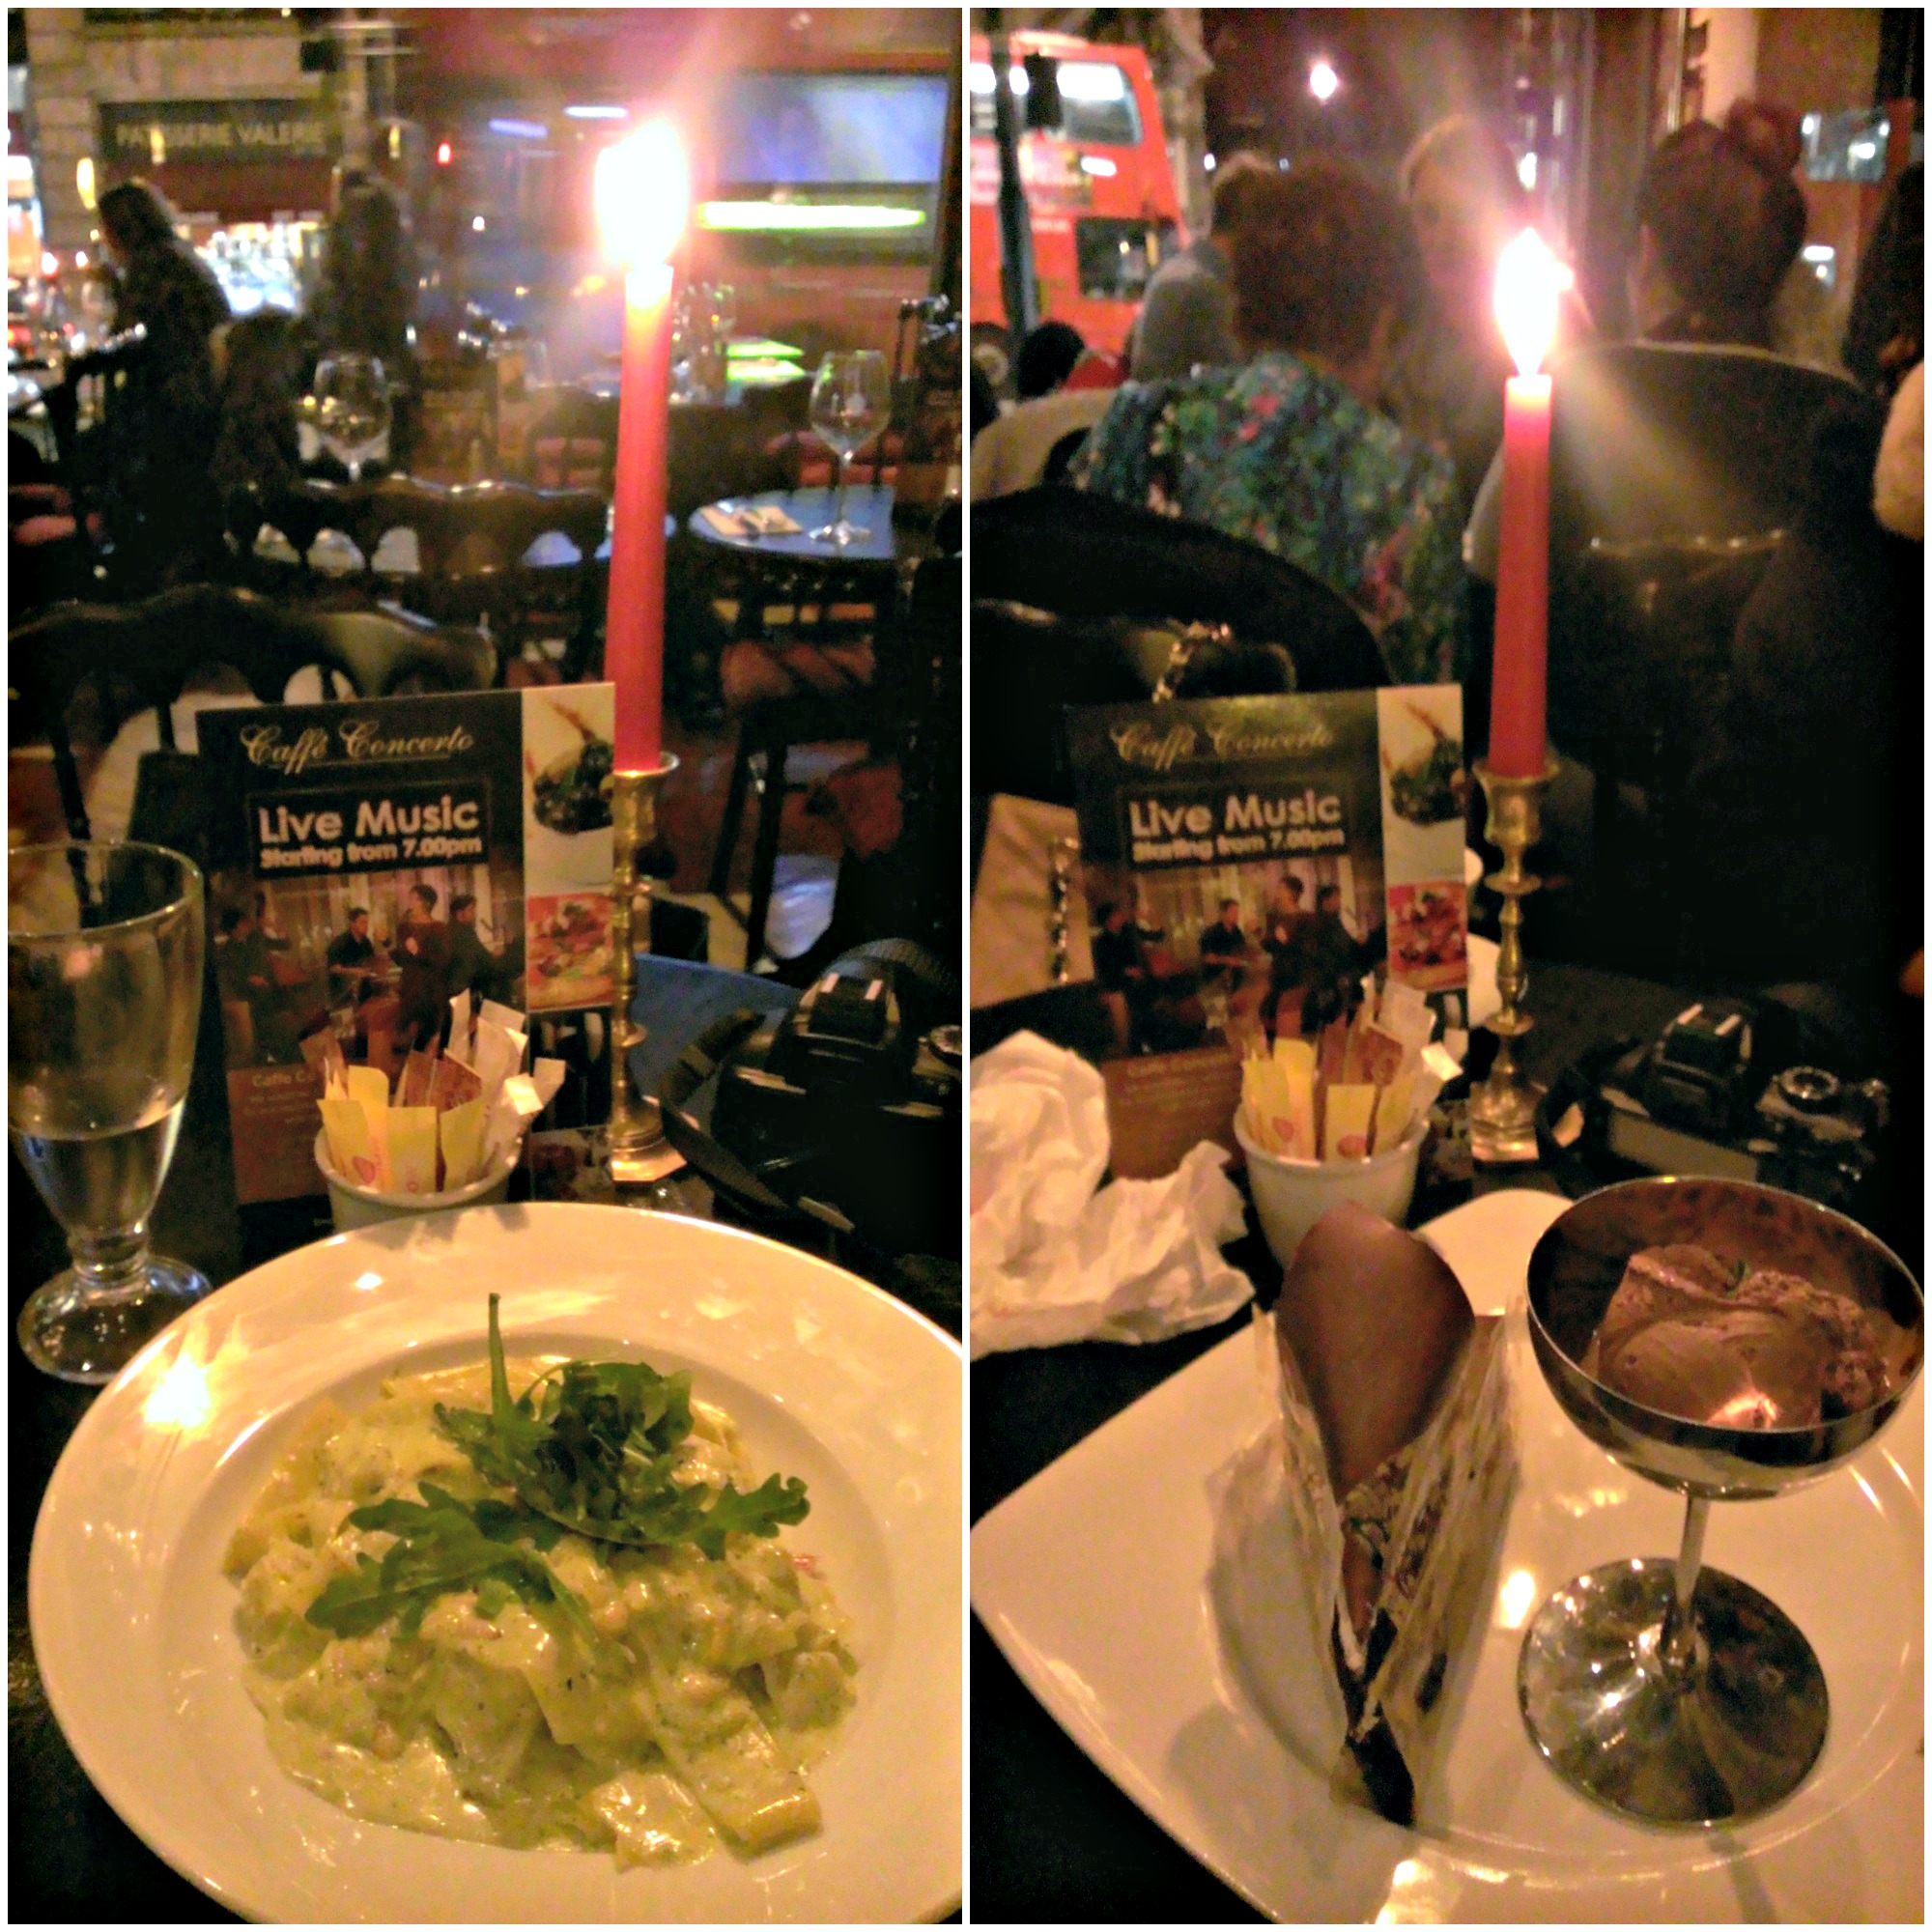 Caffe Concerto London Beautiful Grand Caffe Concerto With